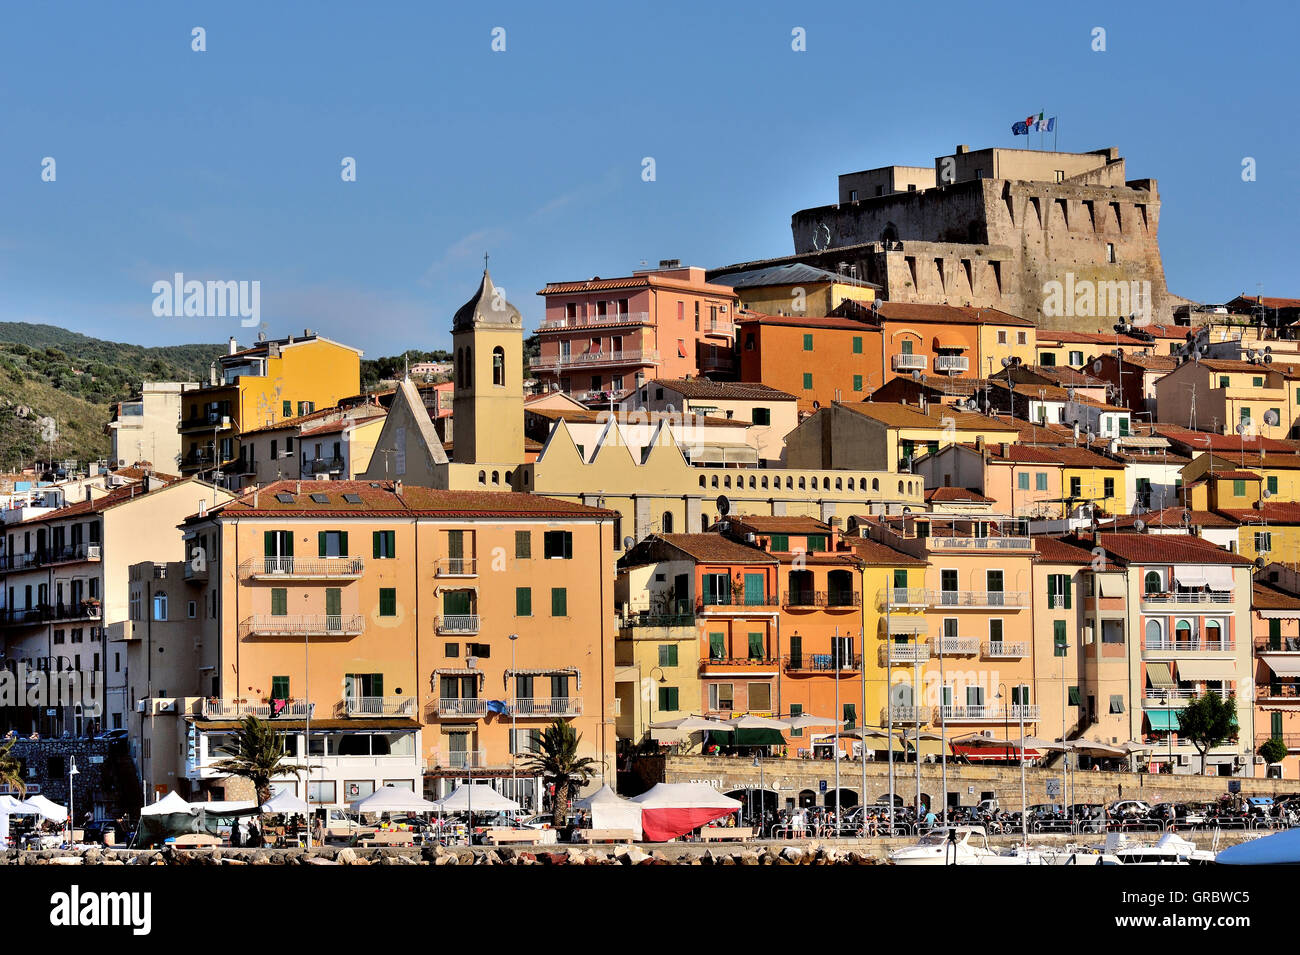 Coloured Houses With Castle And Port Of Town Porto Santo Stefano In Tuscany, Italy - Stock Image